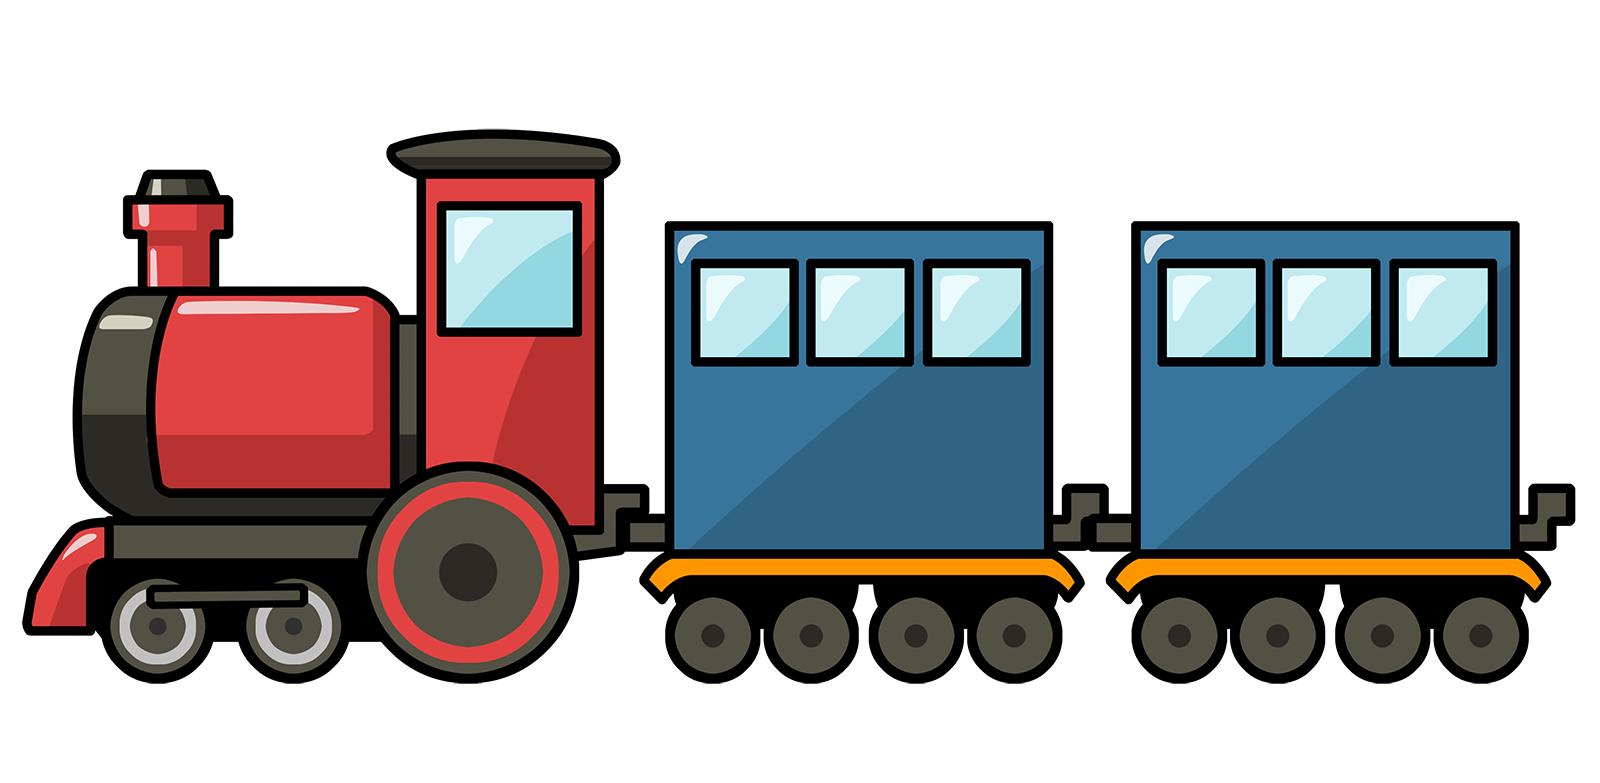 Passenger train clipart graphic free library Free Free Train Clipart, Download Free Clip Art, Free Clip Art on ... graphic free library